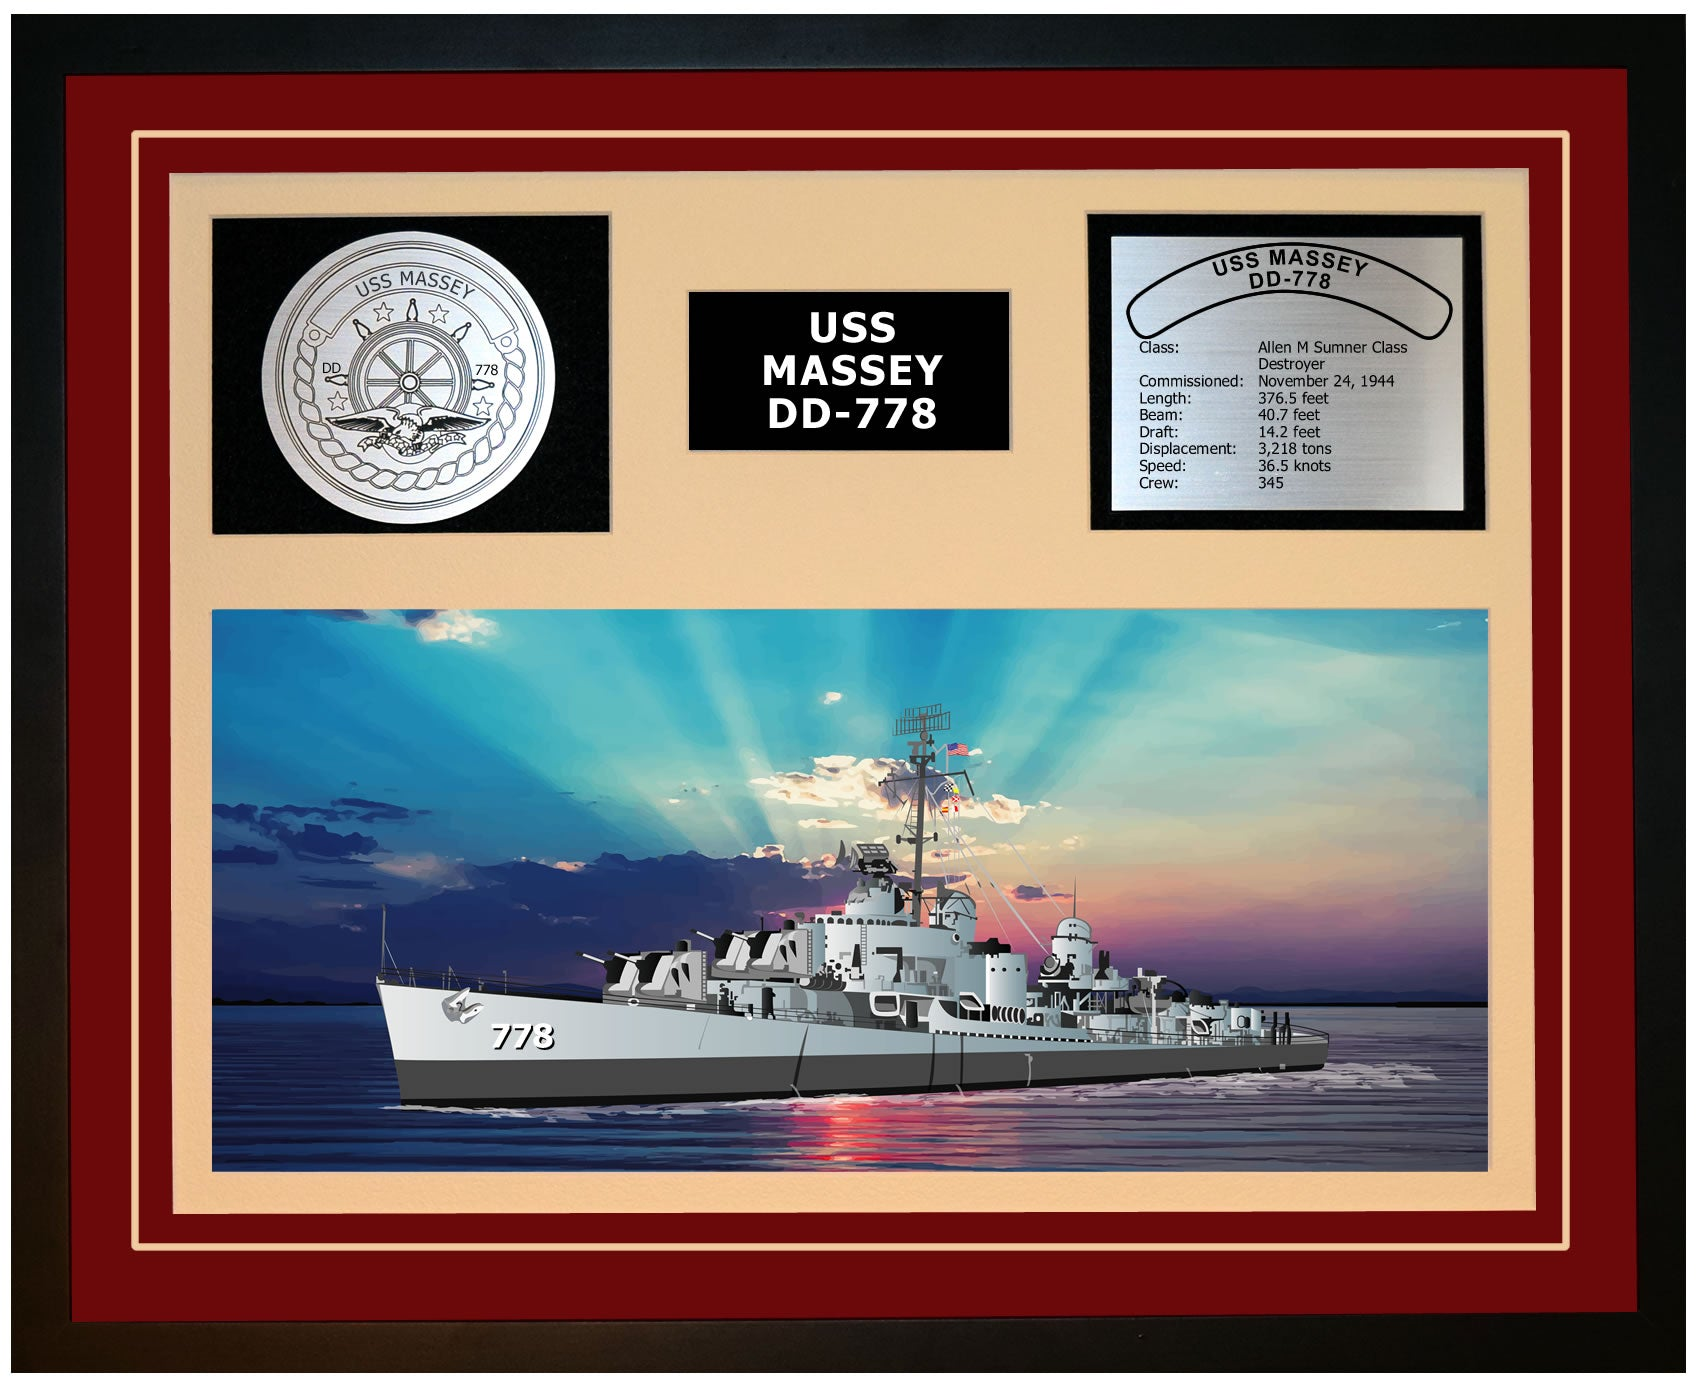 USS MASSEY DD-778 Framed Navy Ship Display Burgundy